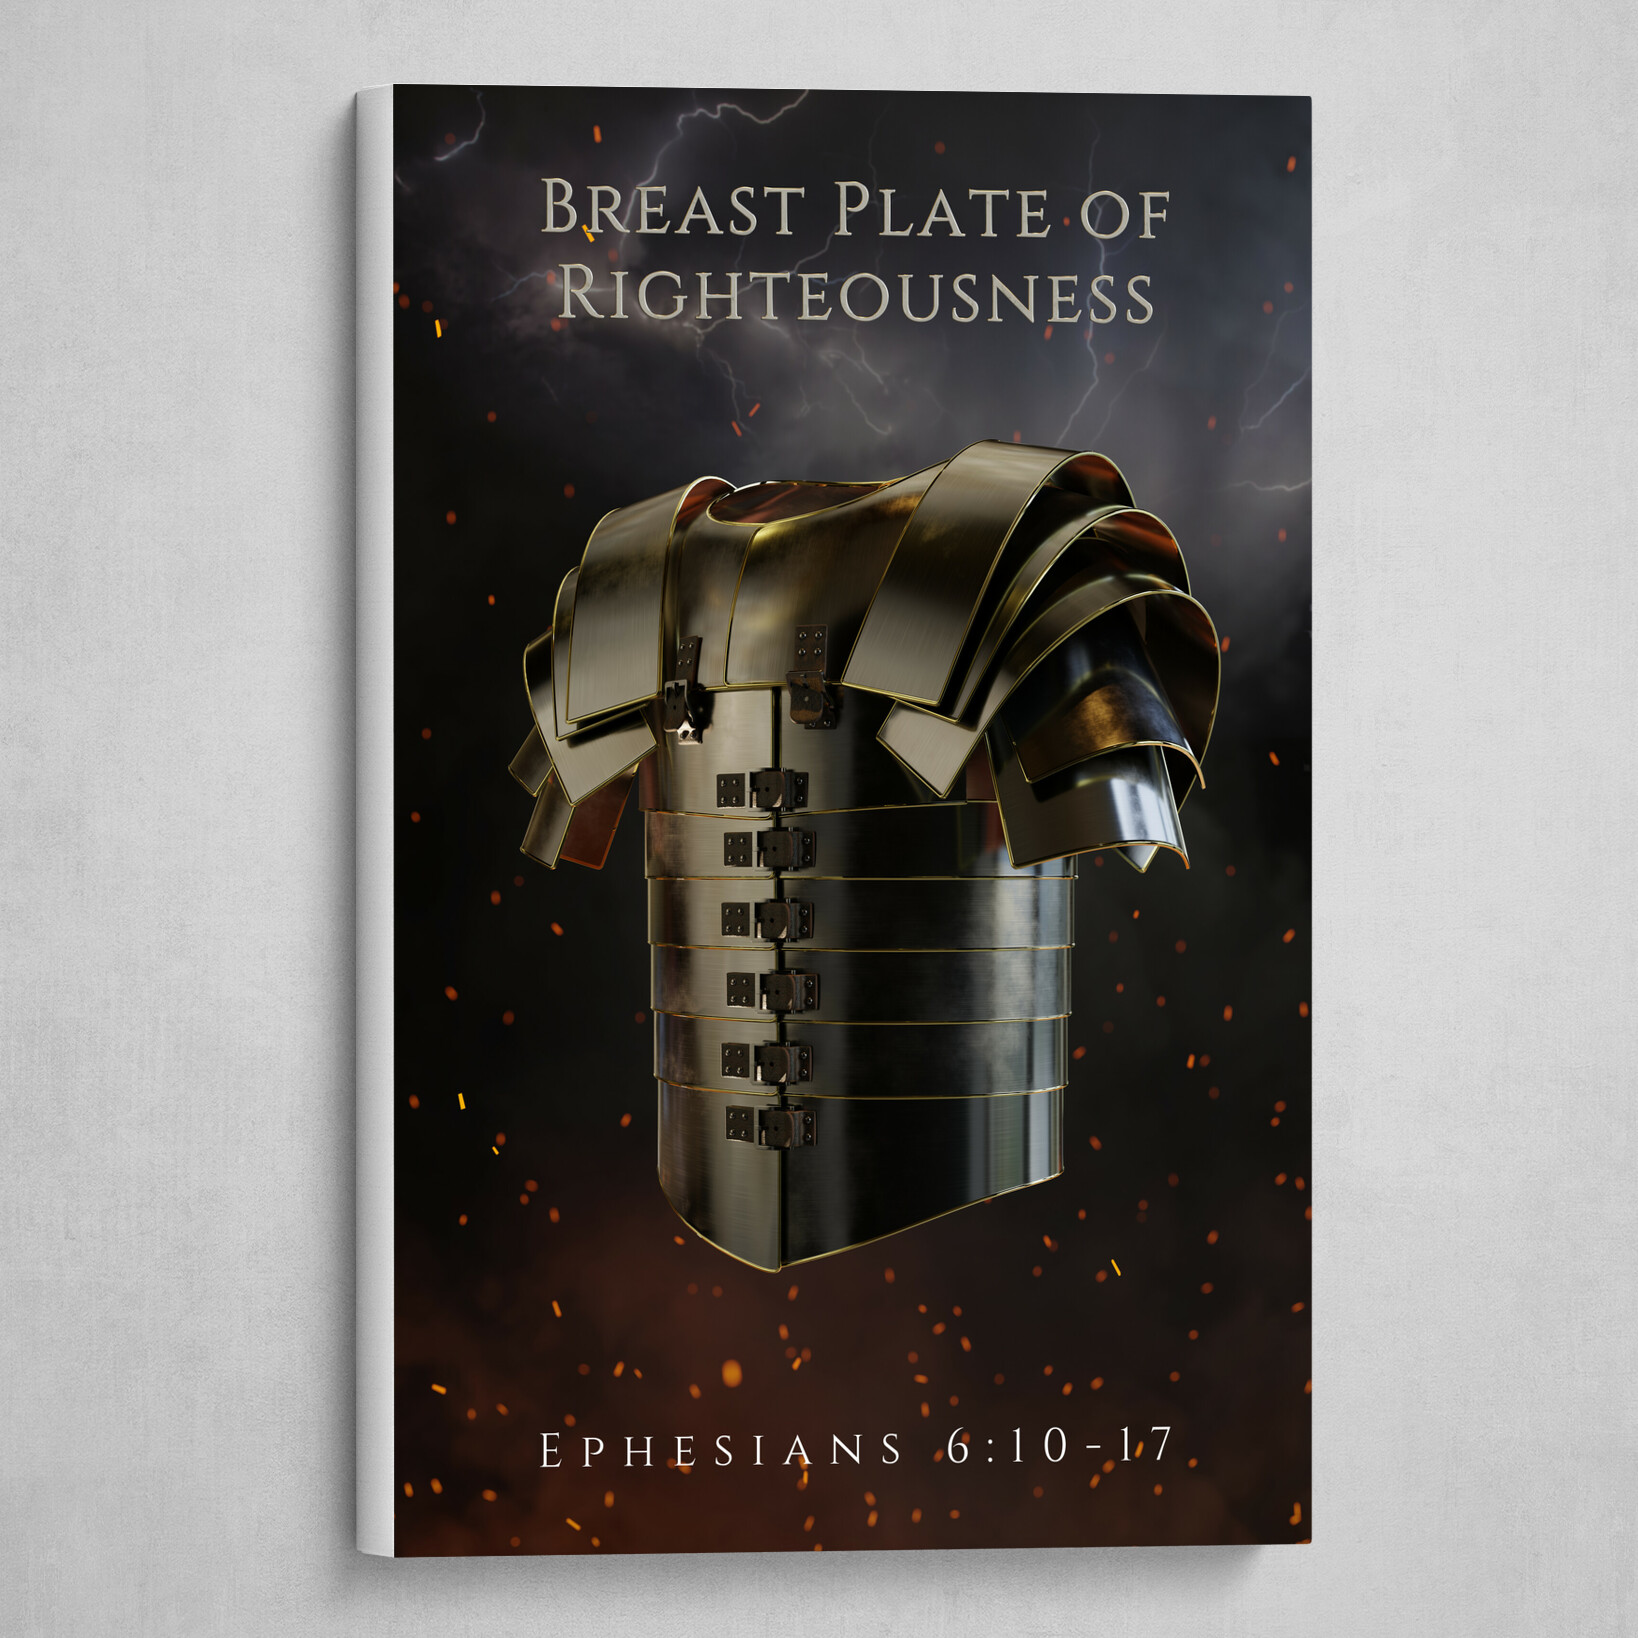 Breast Plate of Righteousness